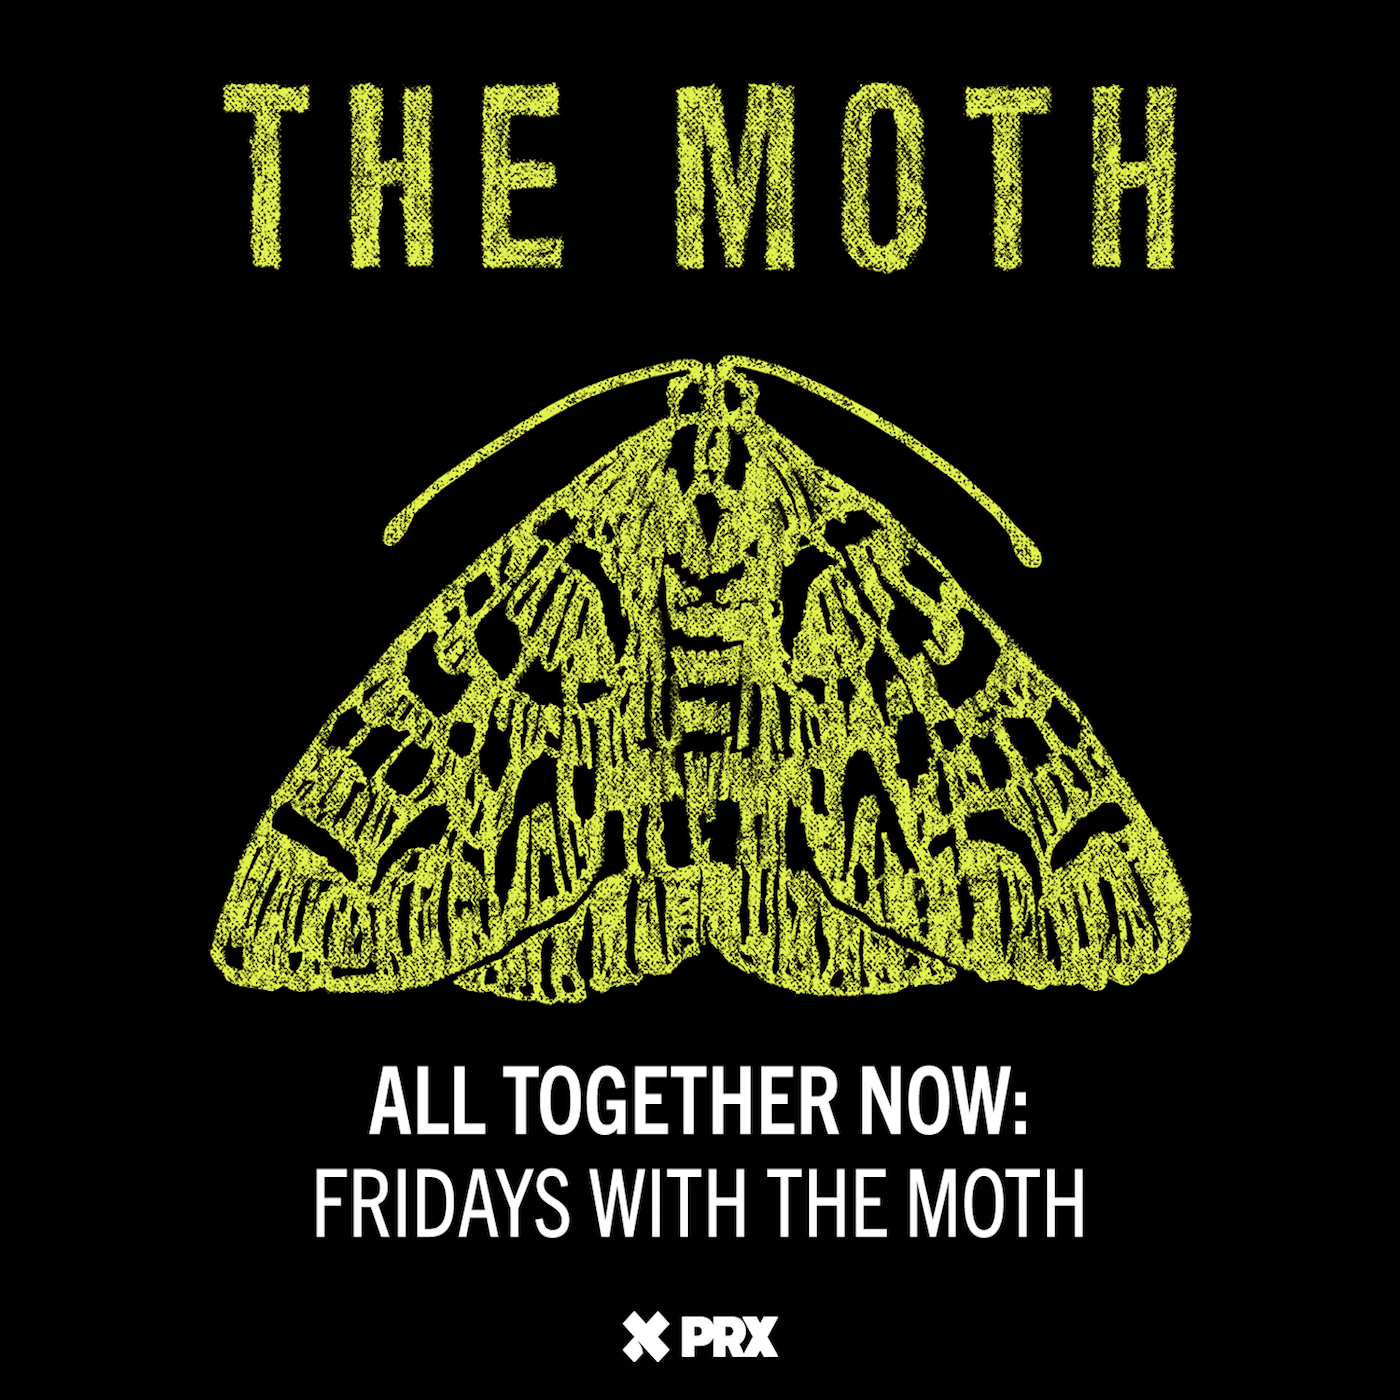 All Together Now: Fridays with The Moth - Maurice Ashley